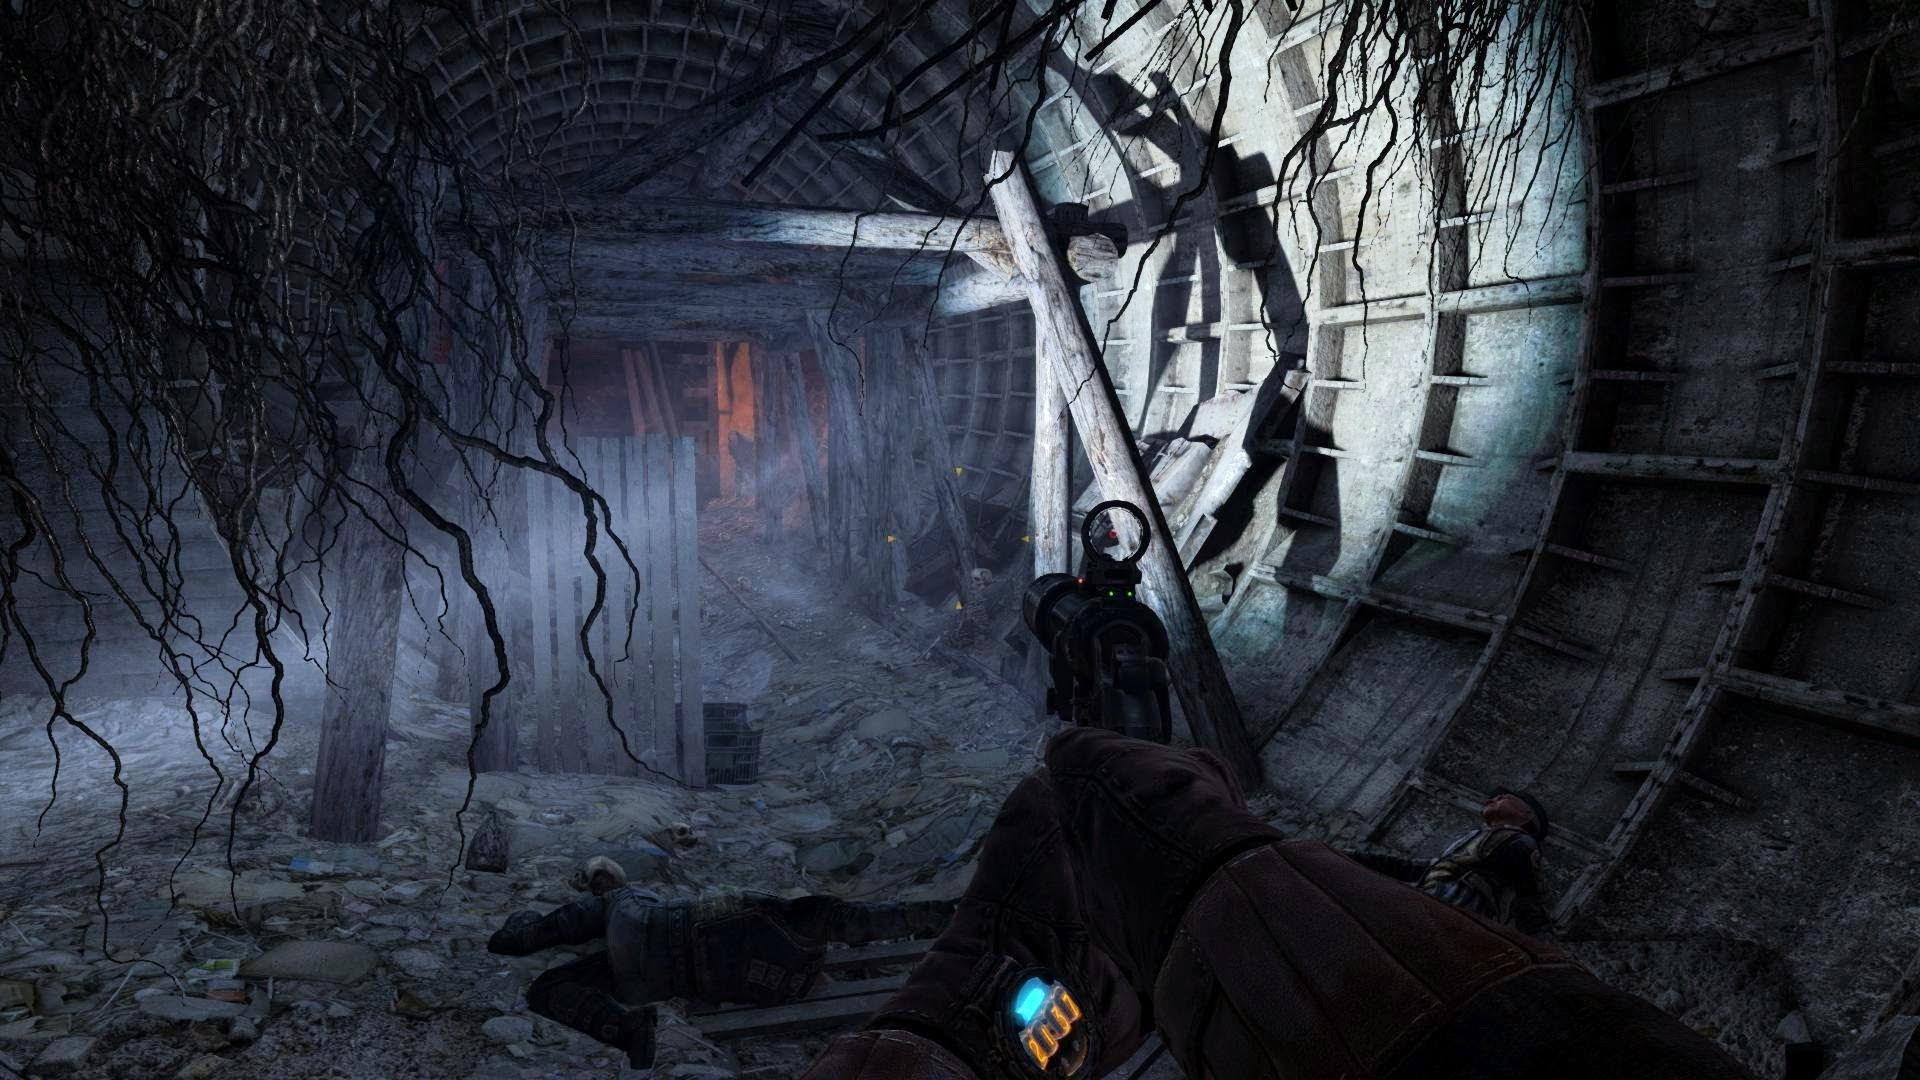 Free Download Metro Last Light Wallpapers Wallpaperdeck 1920x1080